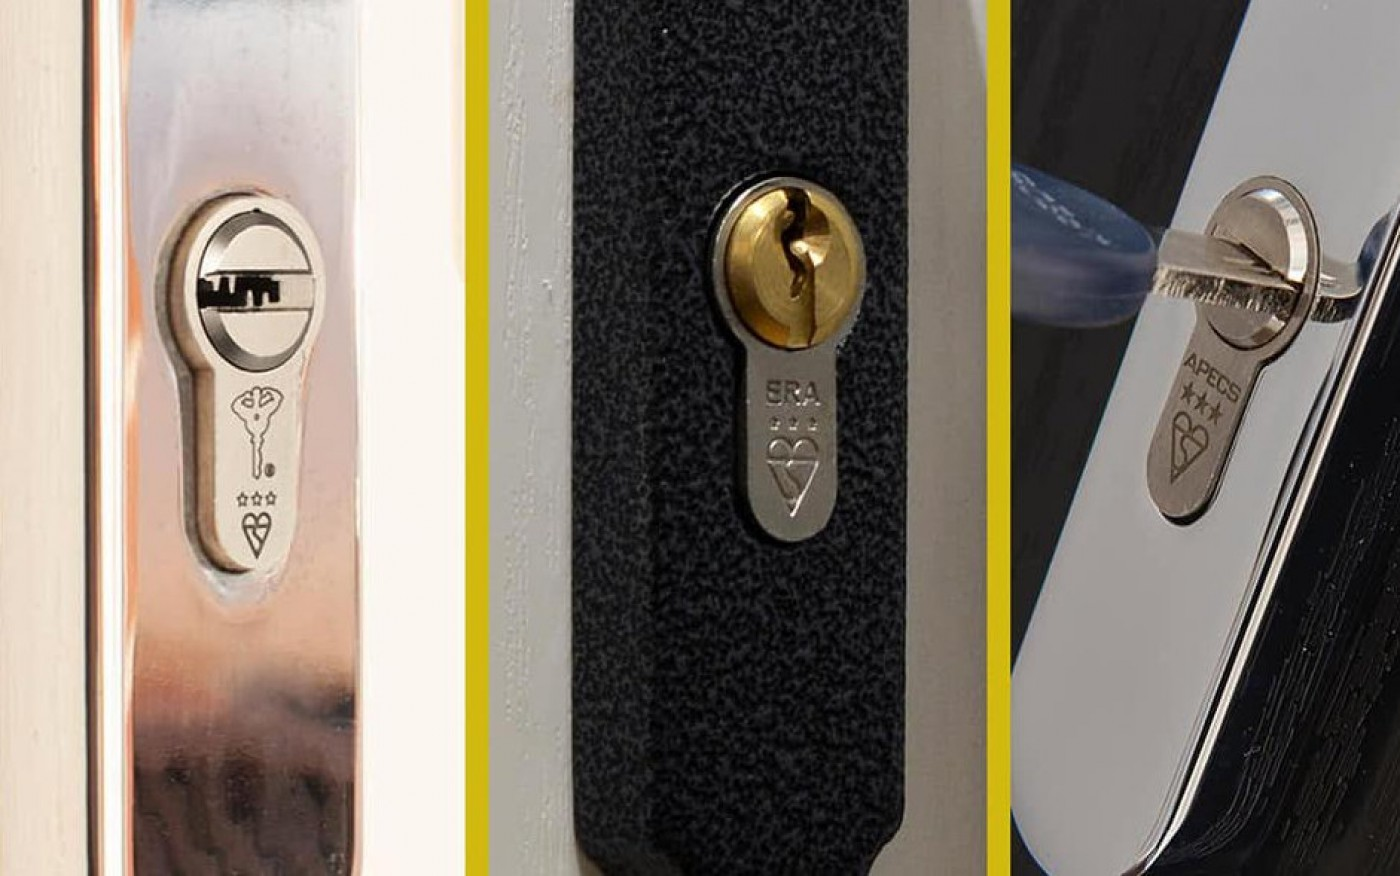 247 Locksmith Spain for home security installations and emergency callouts throughout the Region of Murcia